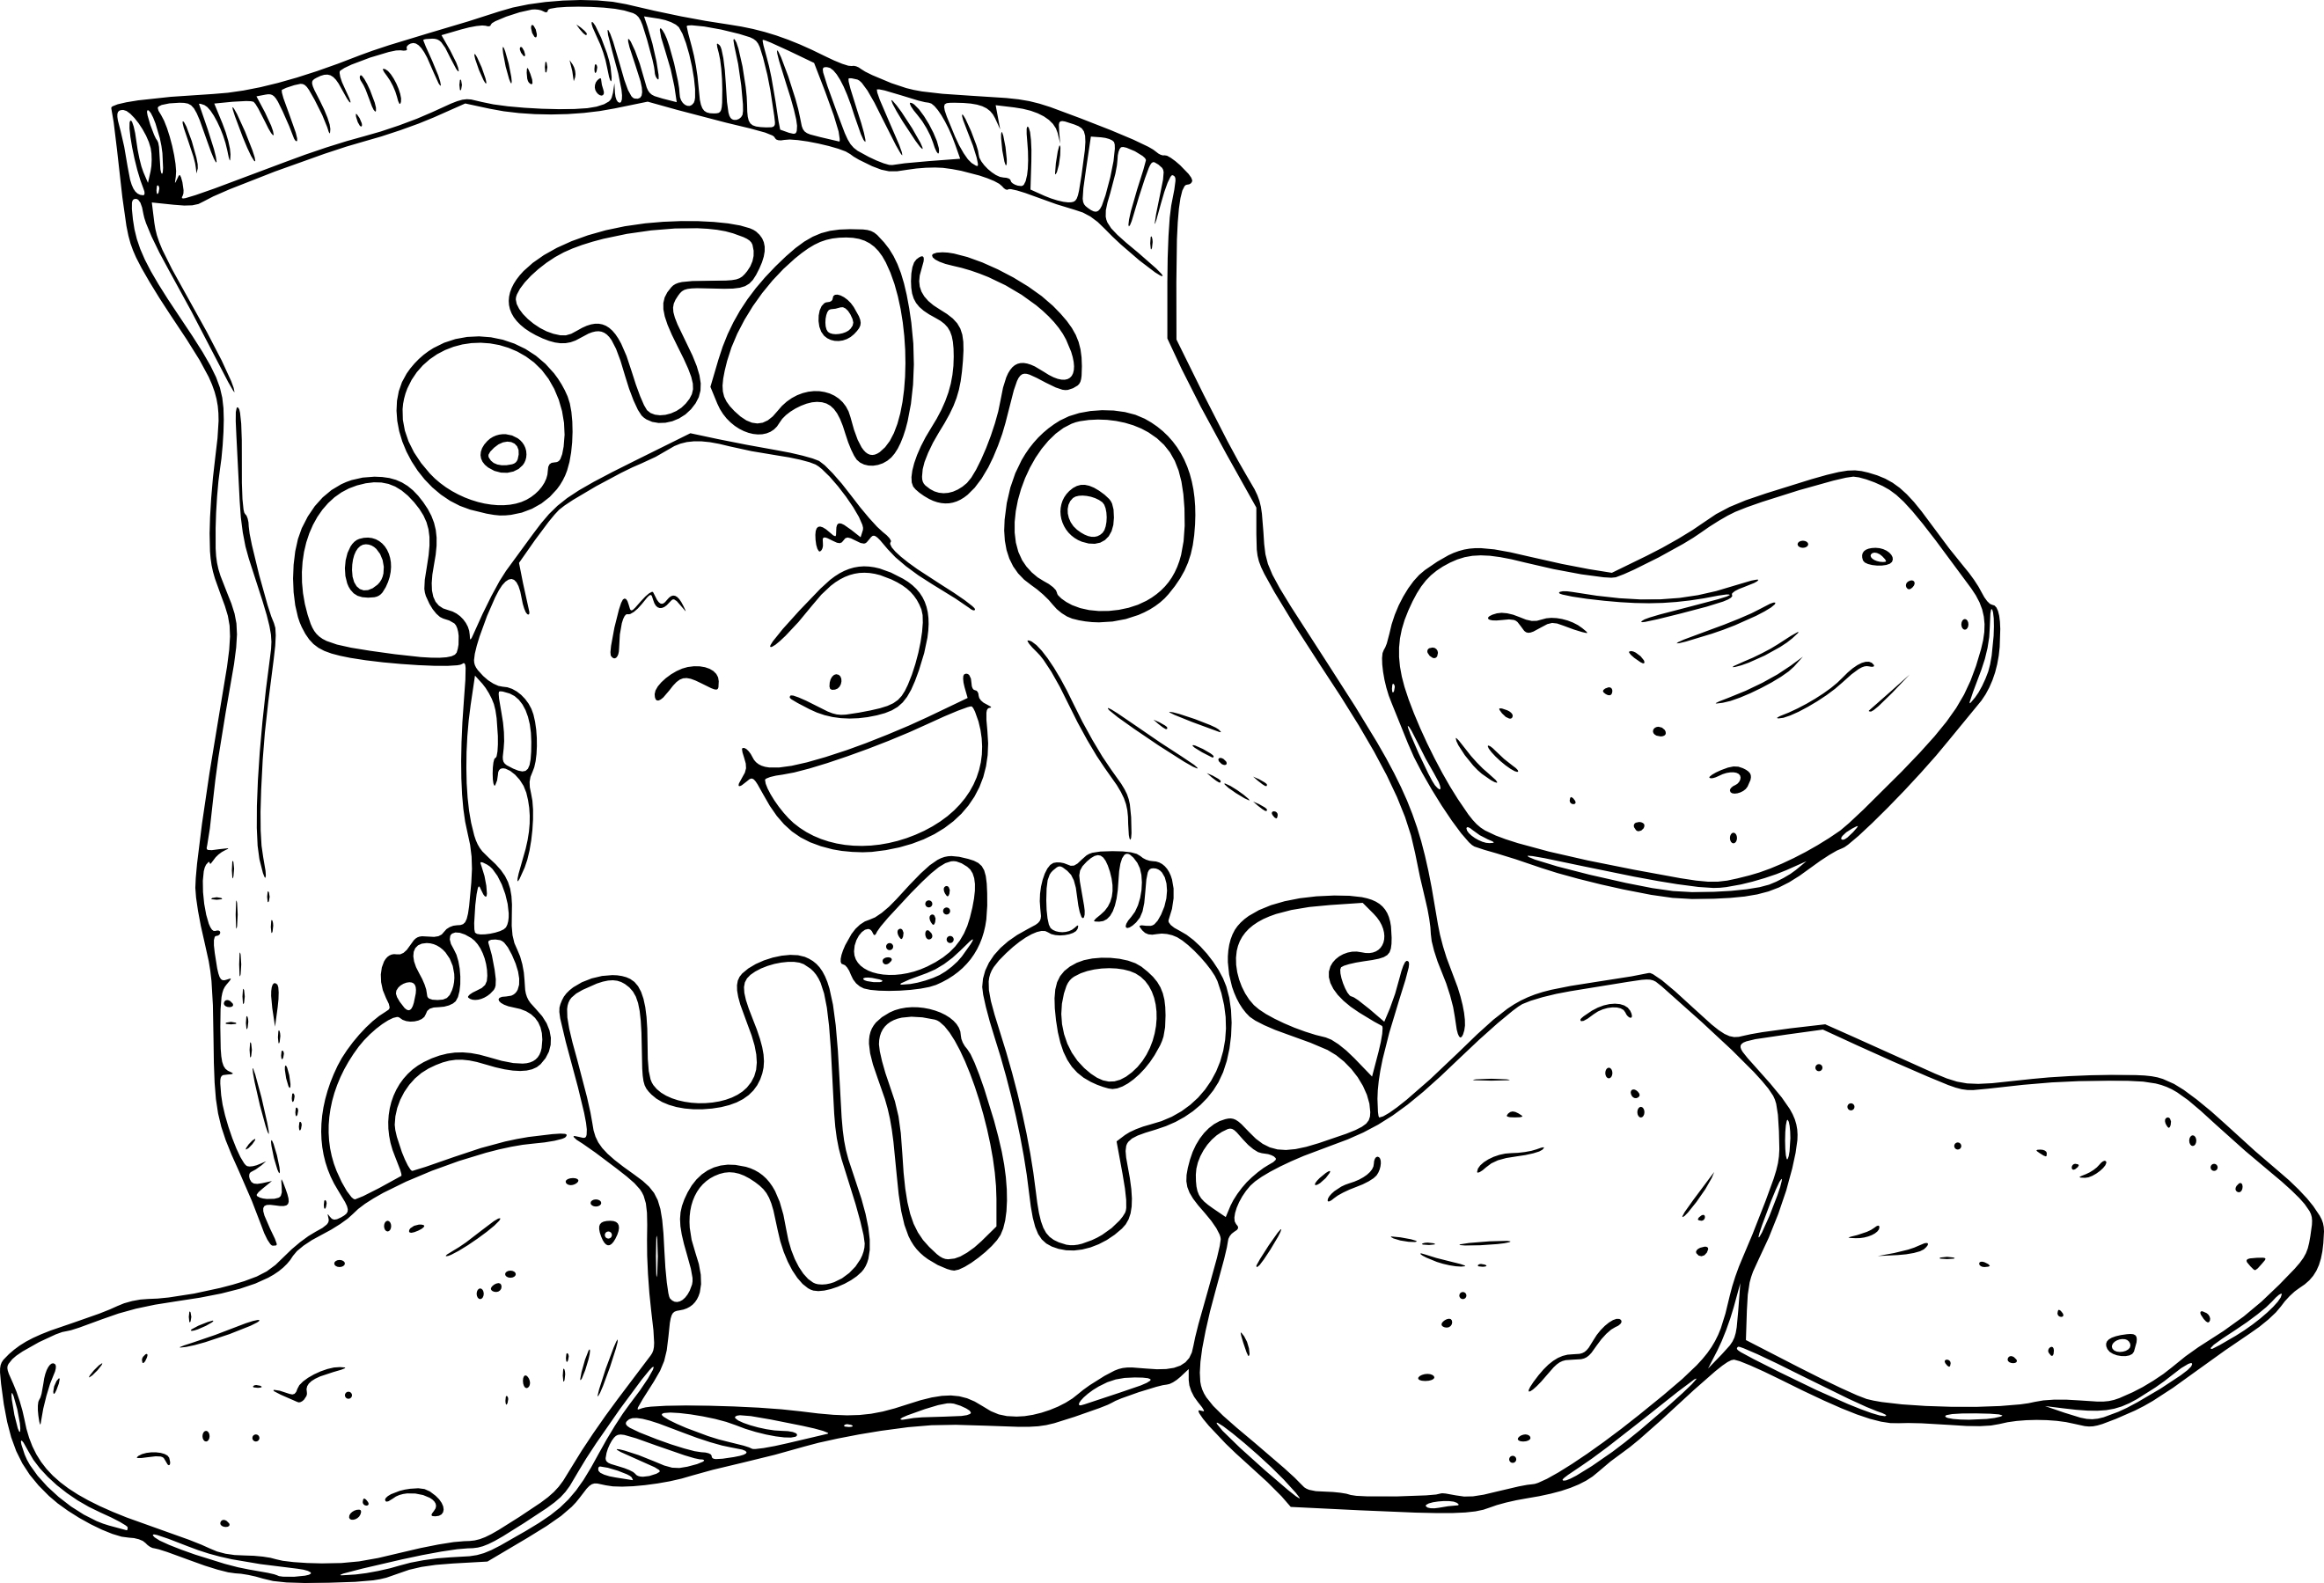 Coloriage paquet de chips